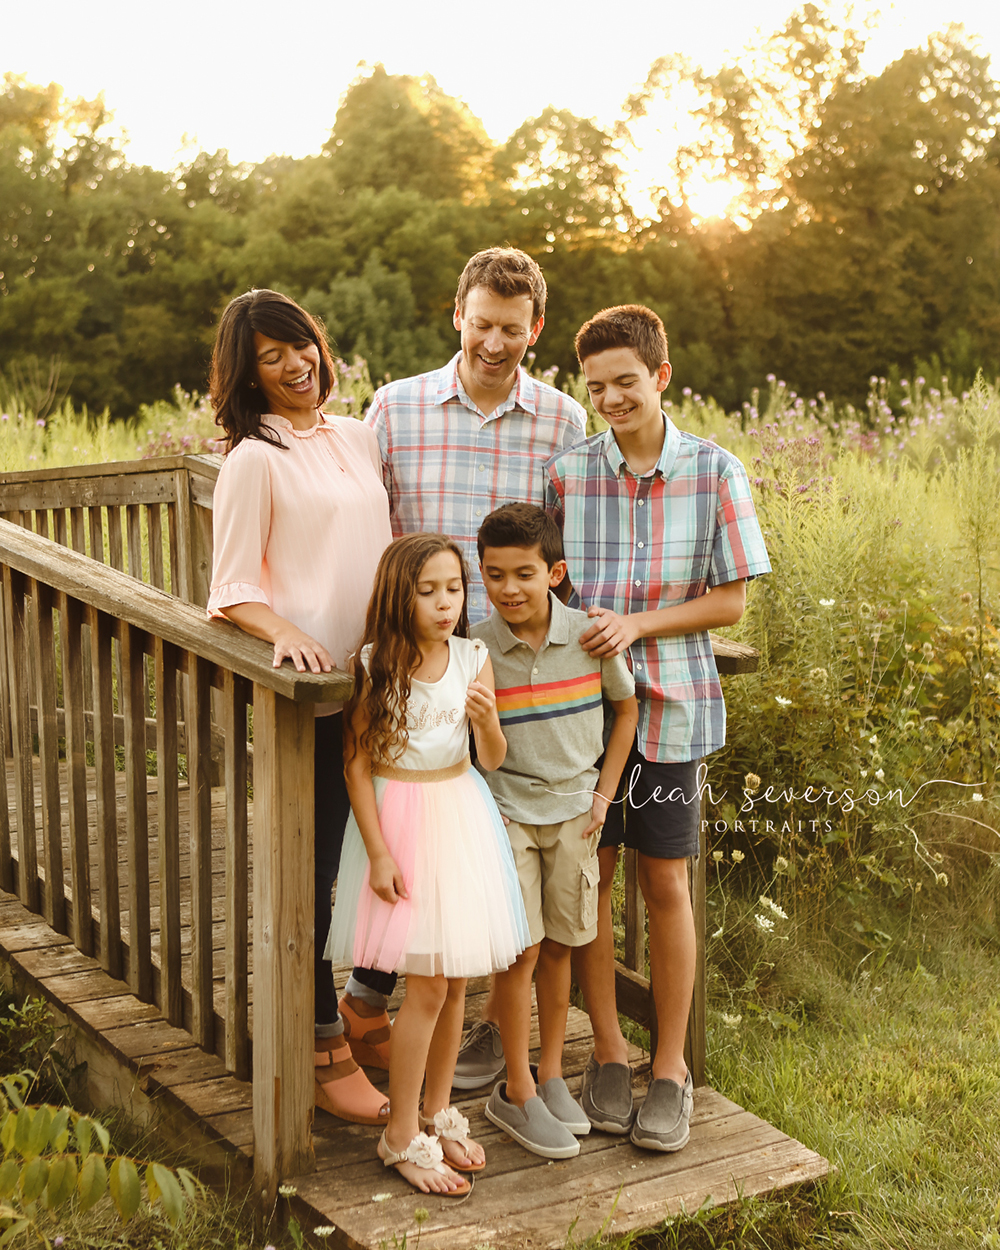 outdoor family portrait aileen helton dentistry on 116 carmel indiana